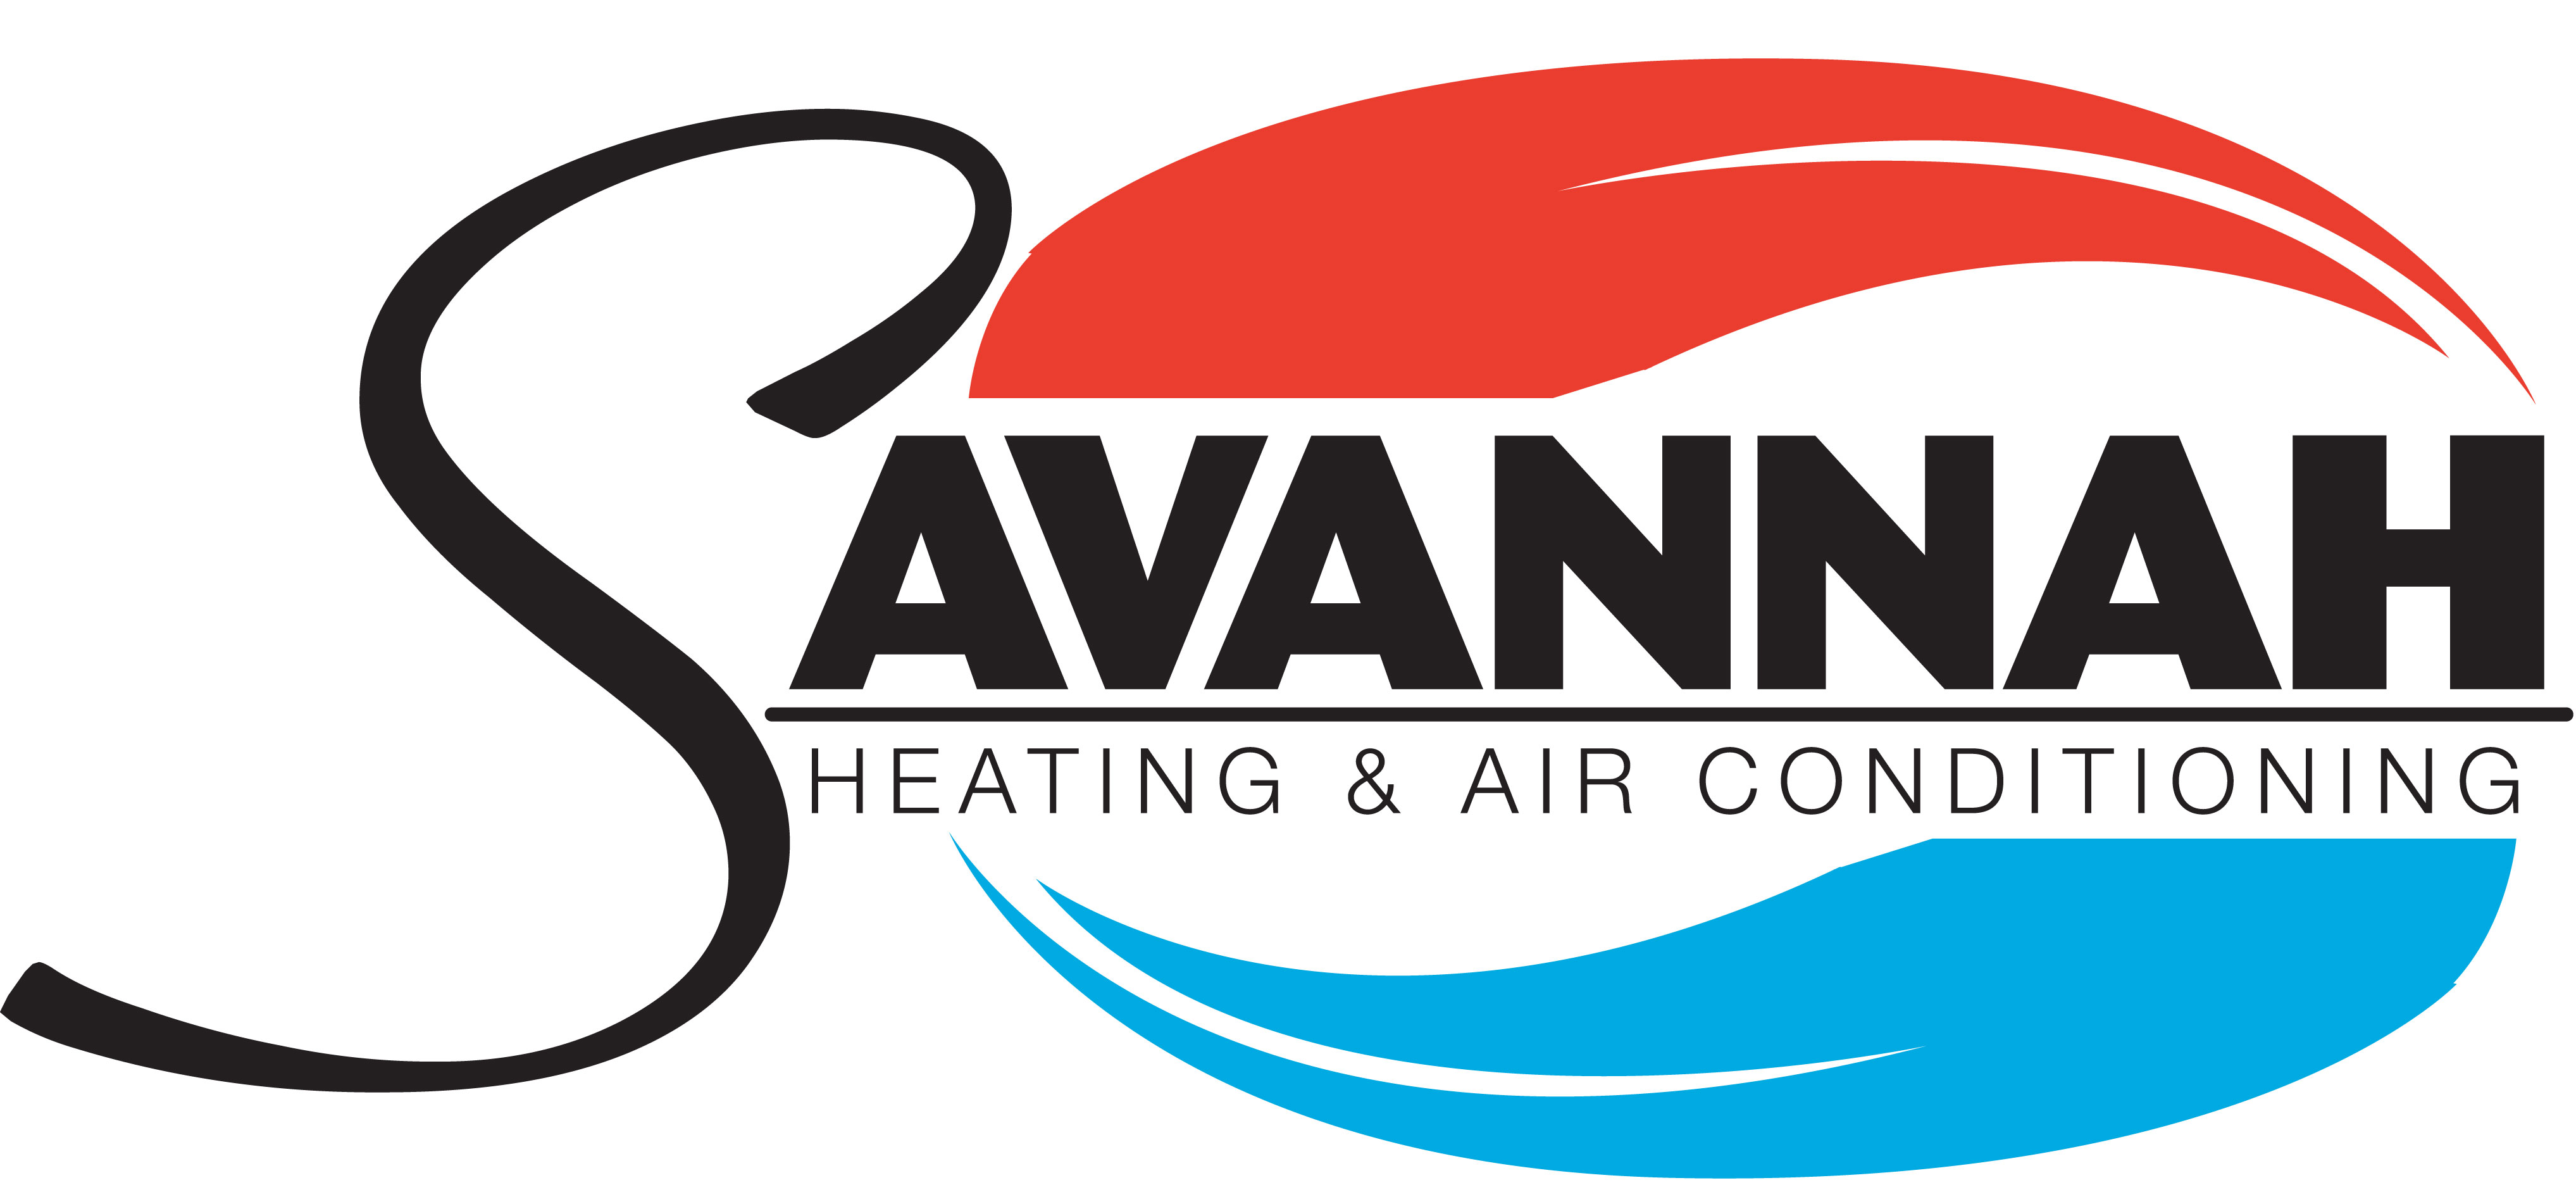 Business Logo for Savannah Heating & Air